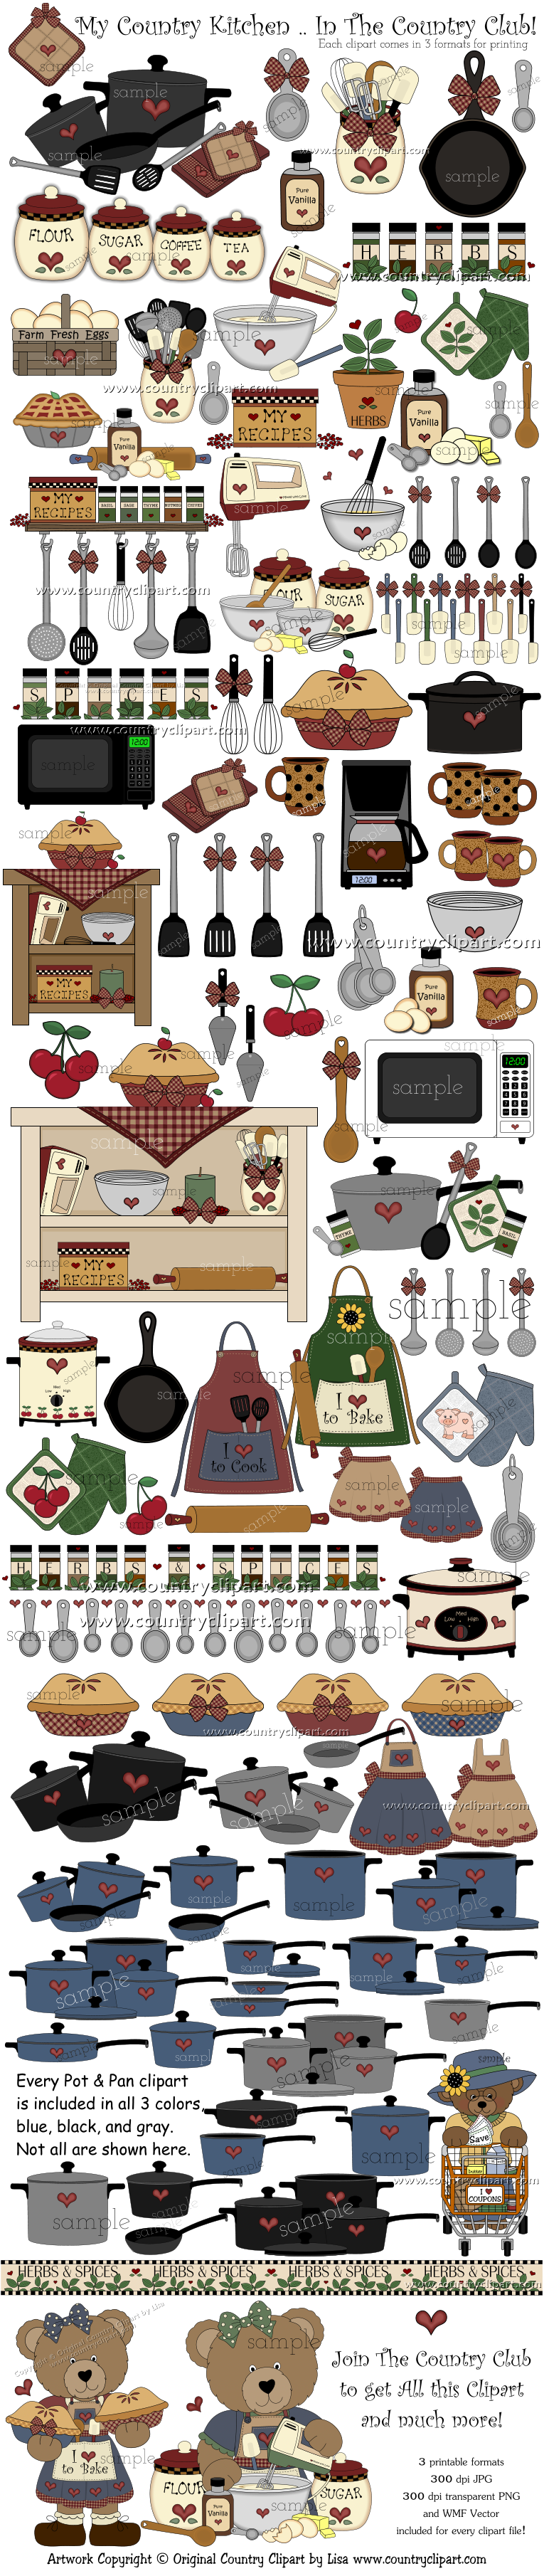 Kitchen Cooking Baking Clipart | All Time Favorite Pins ...